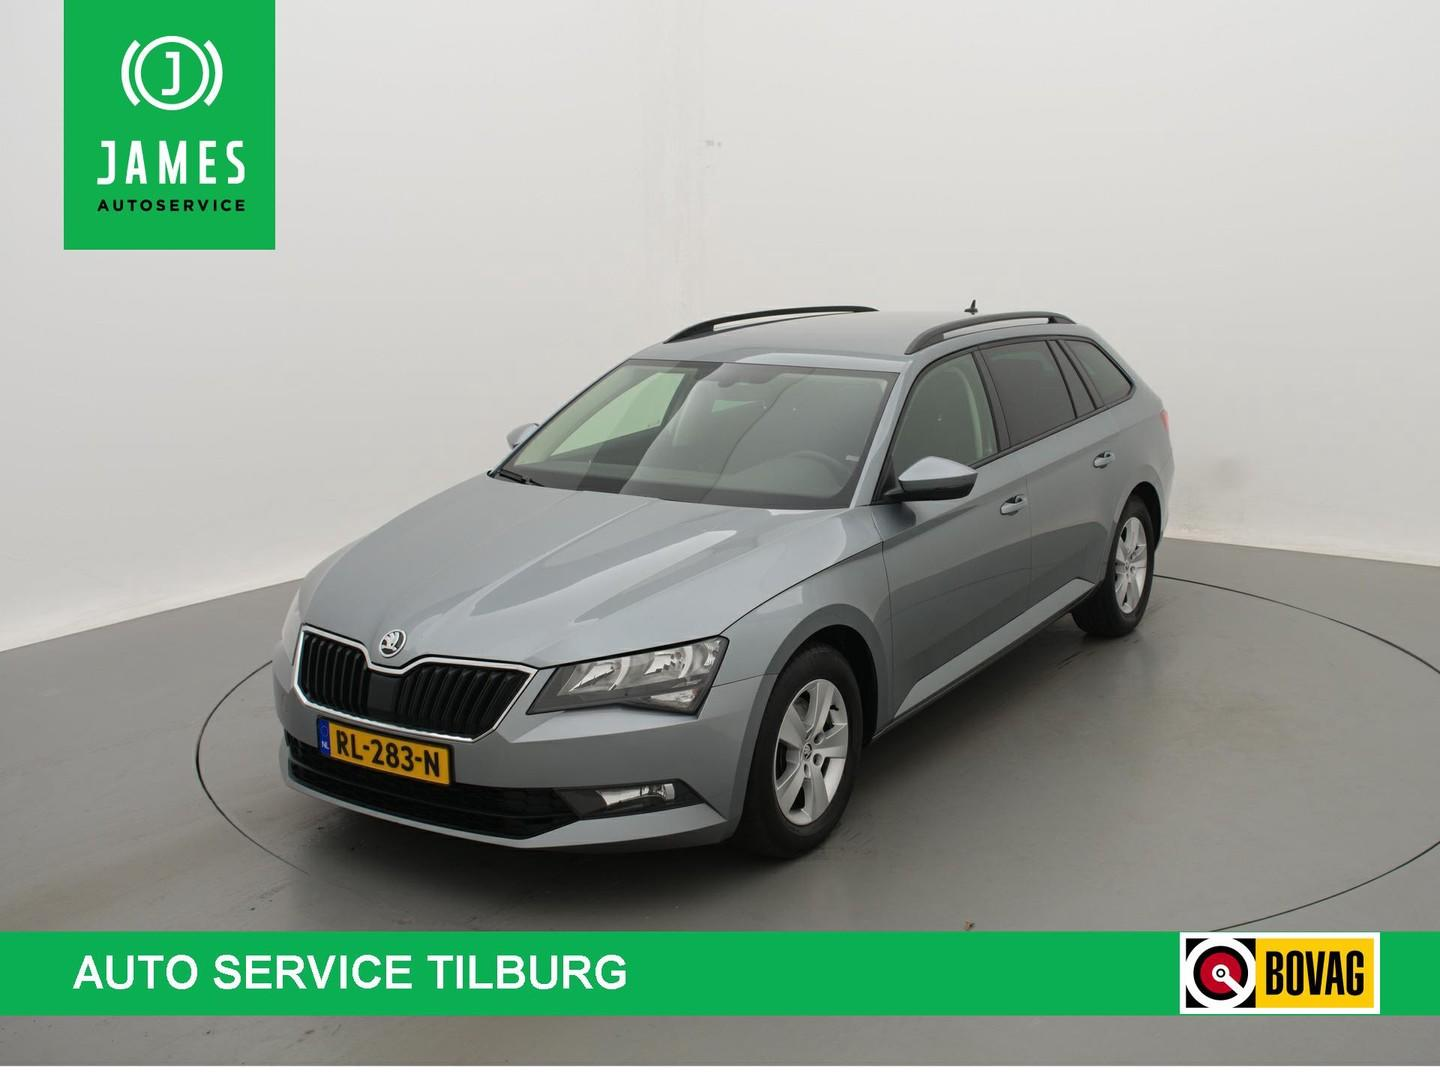 Škoda Superb Combi 1.4 tsi active business navi clima trekhaak lmv